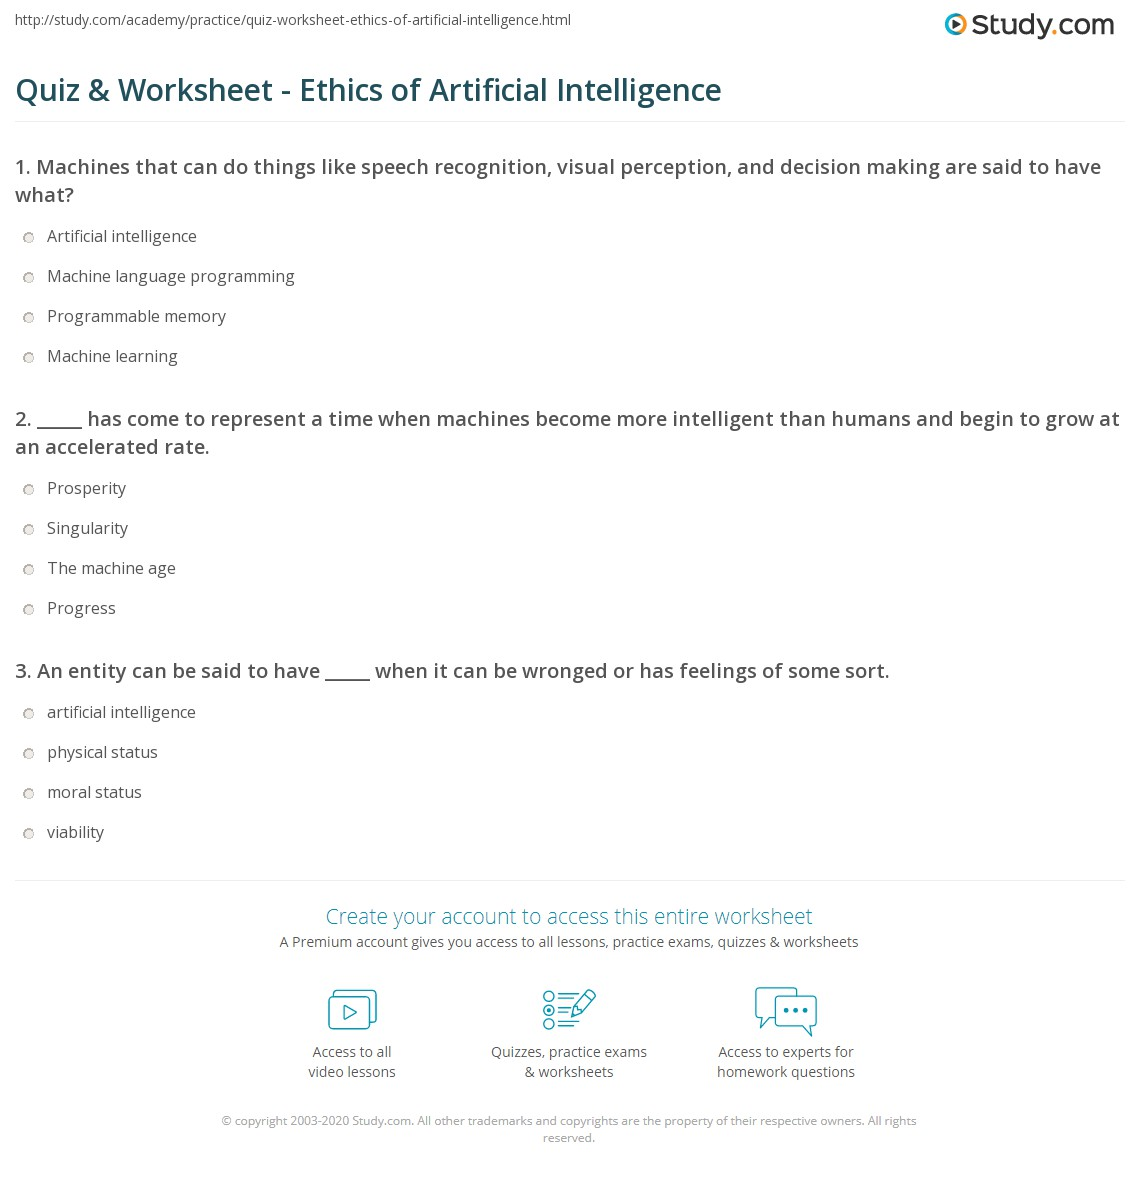 Quiz Worksheet Ethics Of Artificial Intelligence Study Com